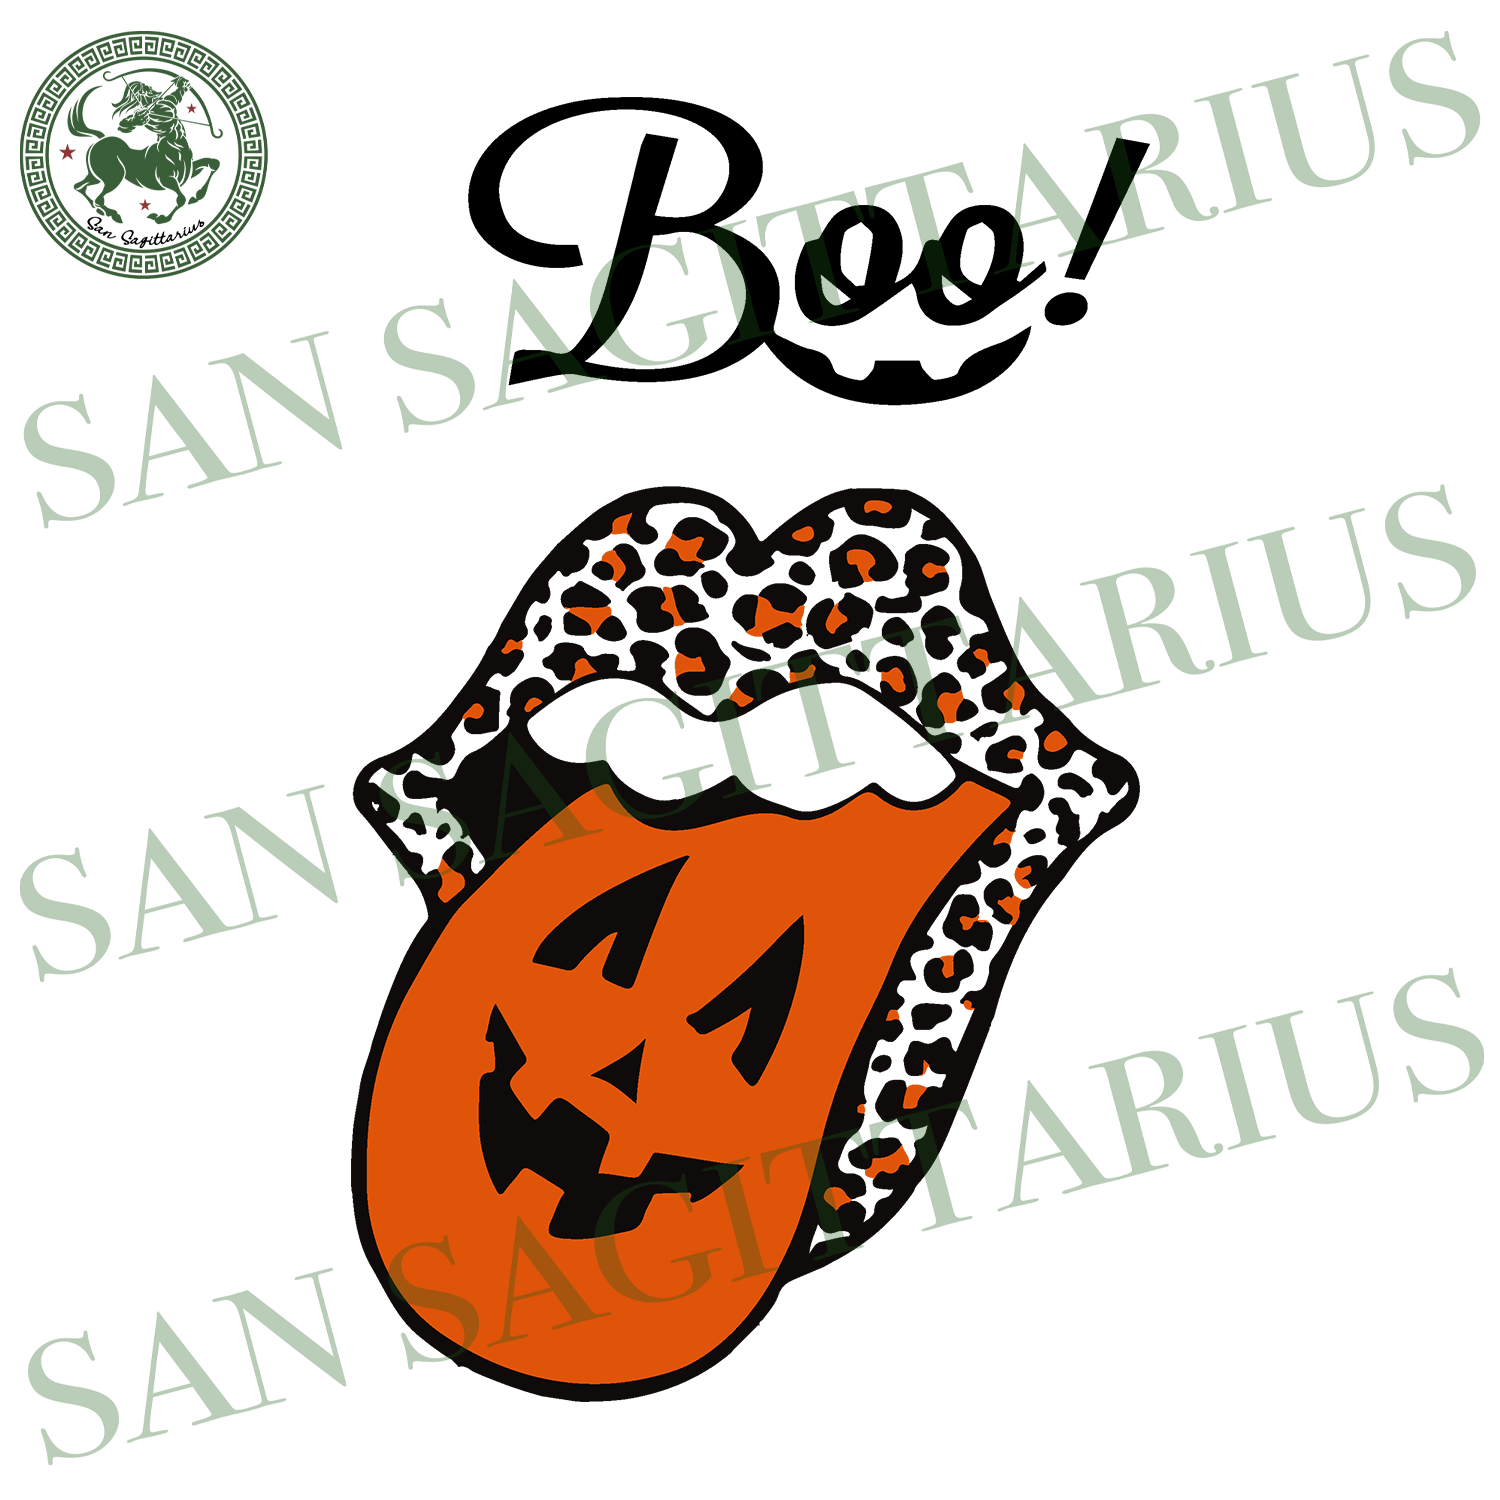 Boo, Halloween Svg, Boo Svg, Lip Svg, Kiss Lips Svg, Tongue Svg, Leopard Tongue Svg, Lip With Tongue Svg, Pumpkin Svg, Pumpkin Face Svg, Happy Halloween, Halloween Shirt, Halloween Gift Boo S